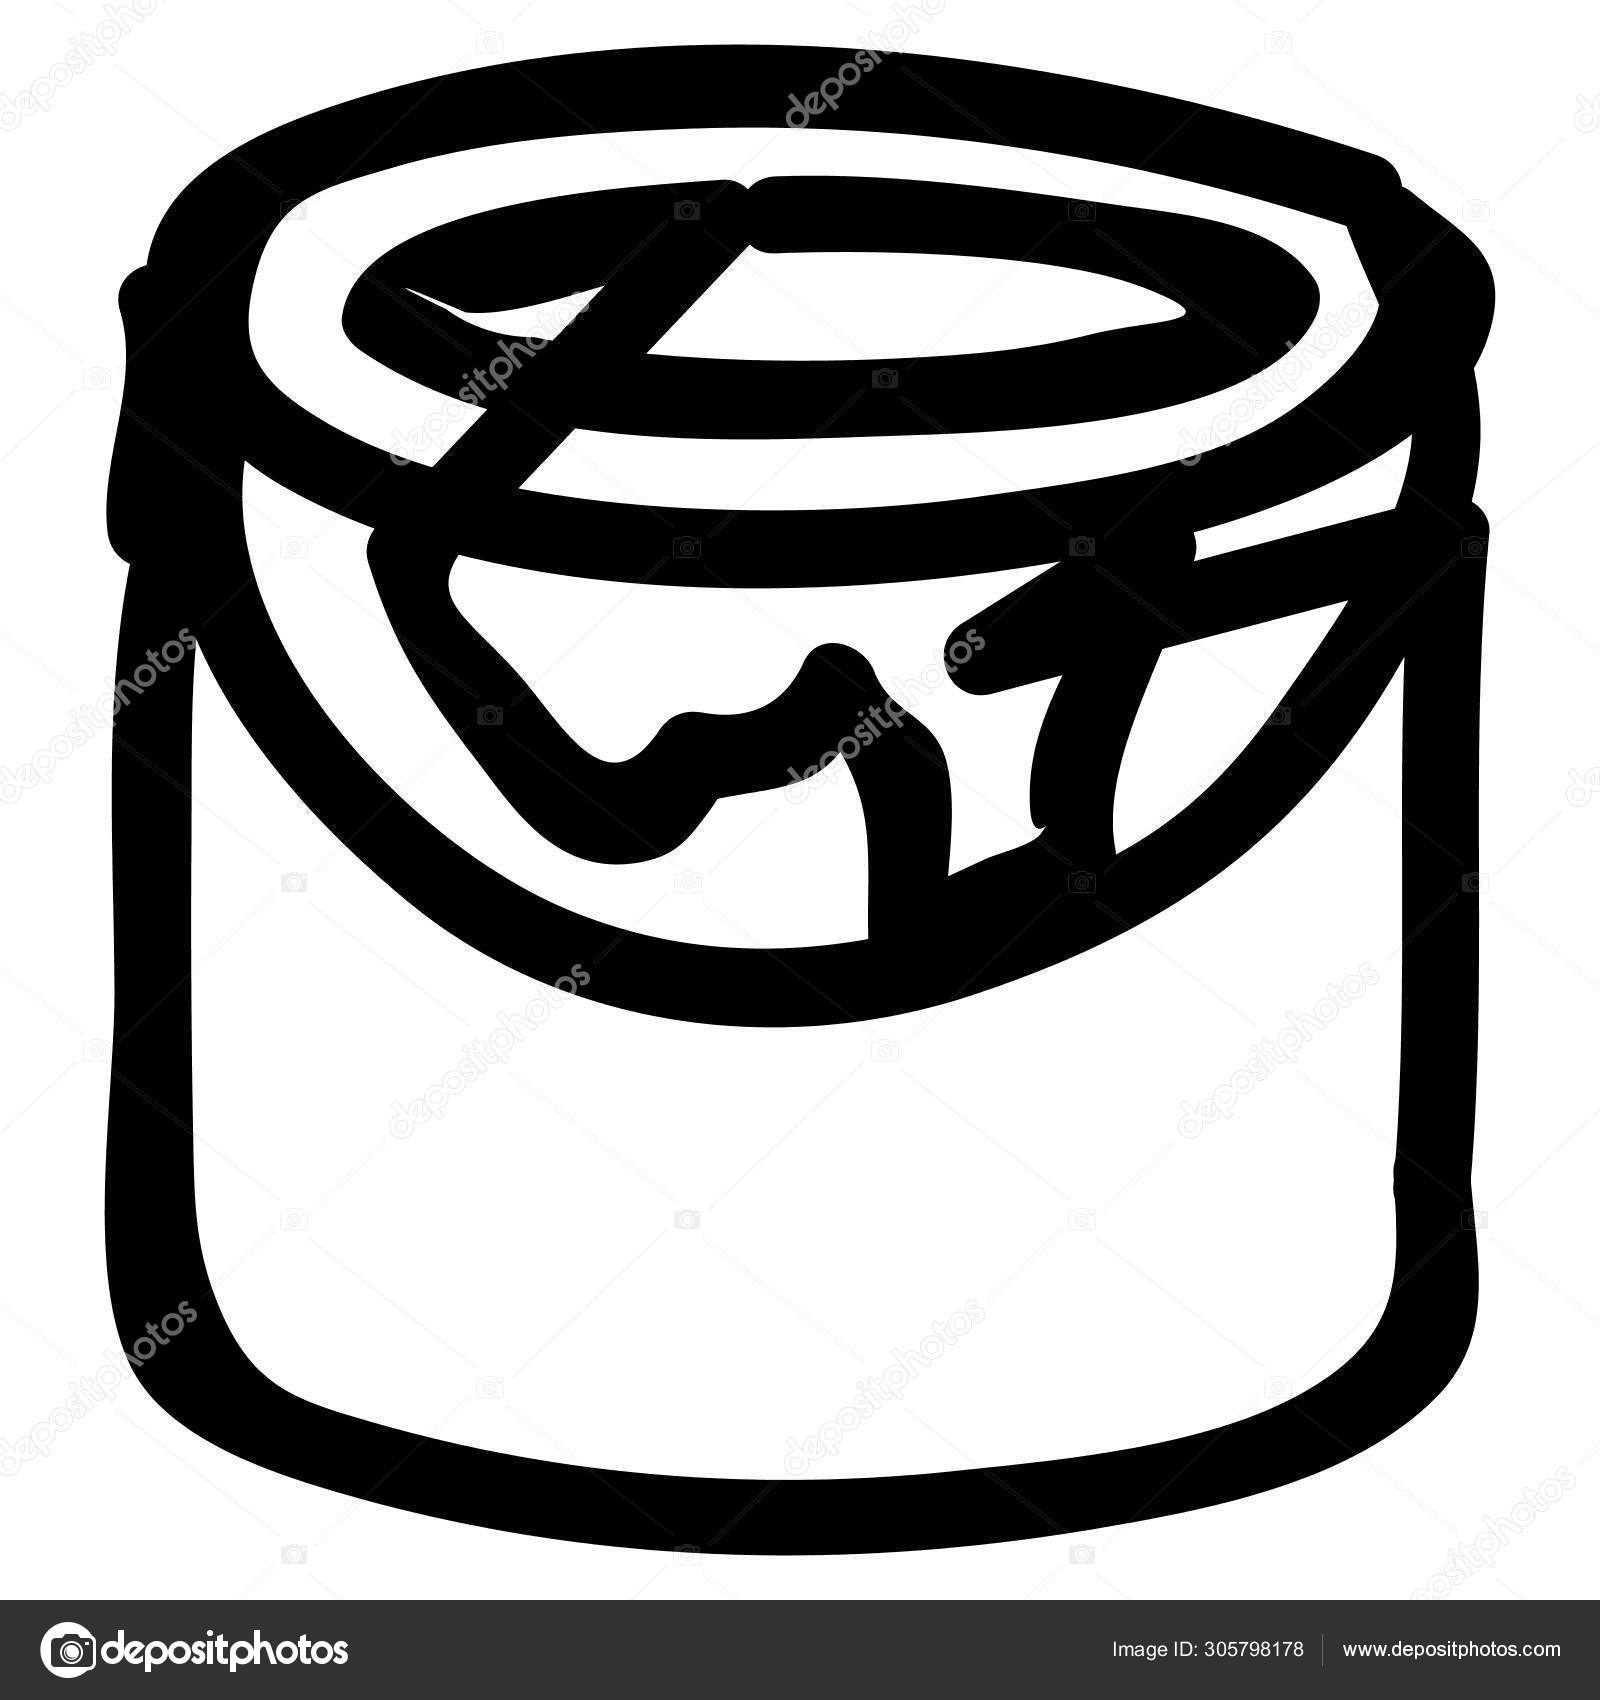 Paint Bucket Simple Design Stock Vector C Iconscout 305798178